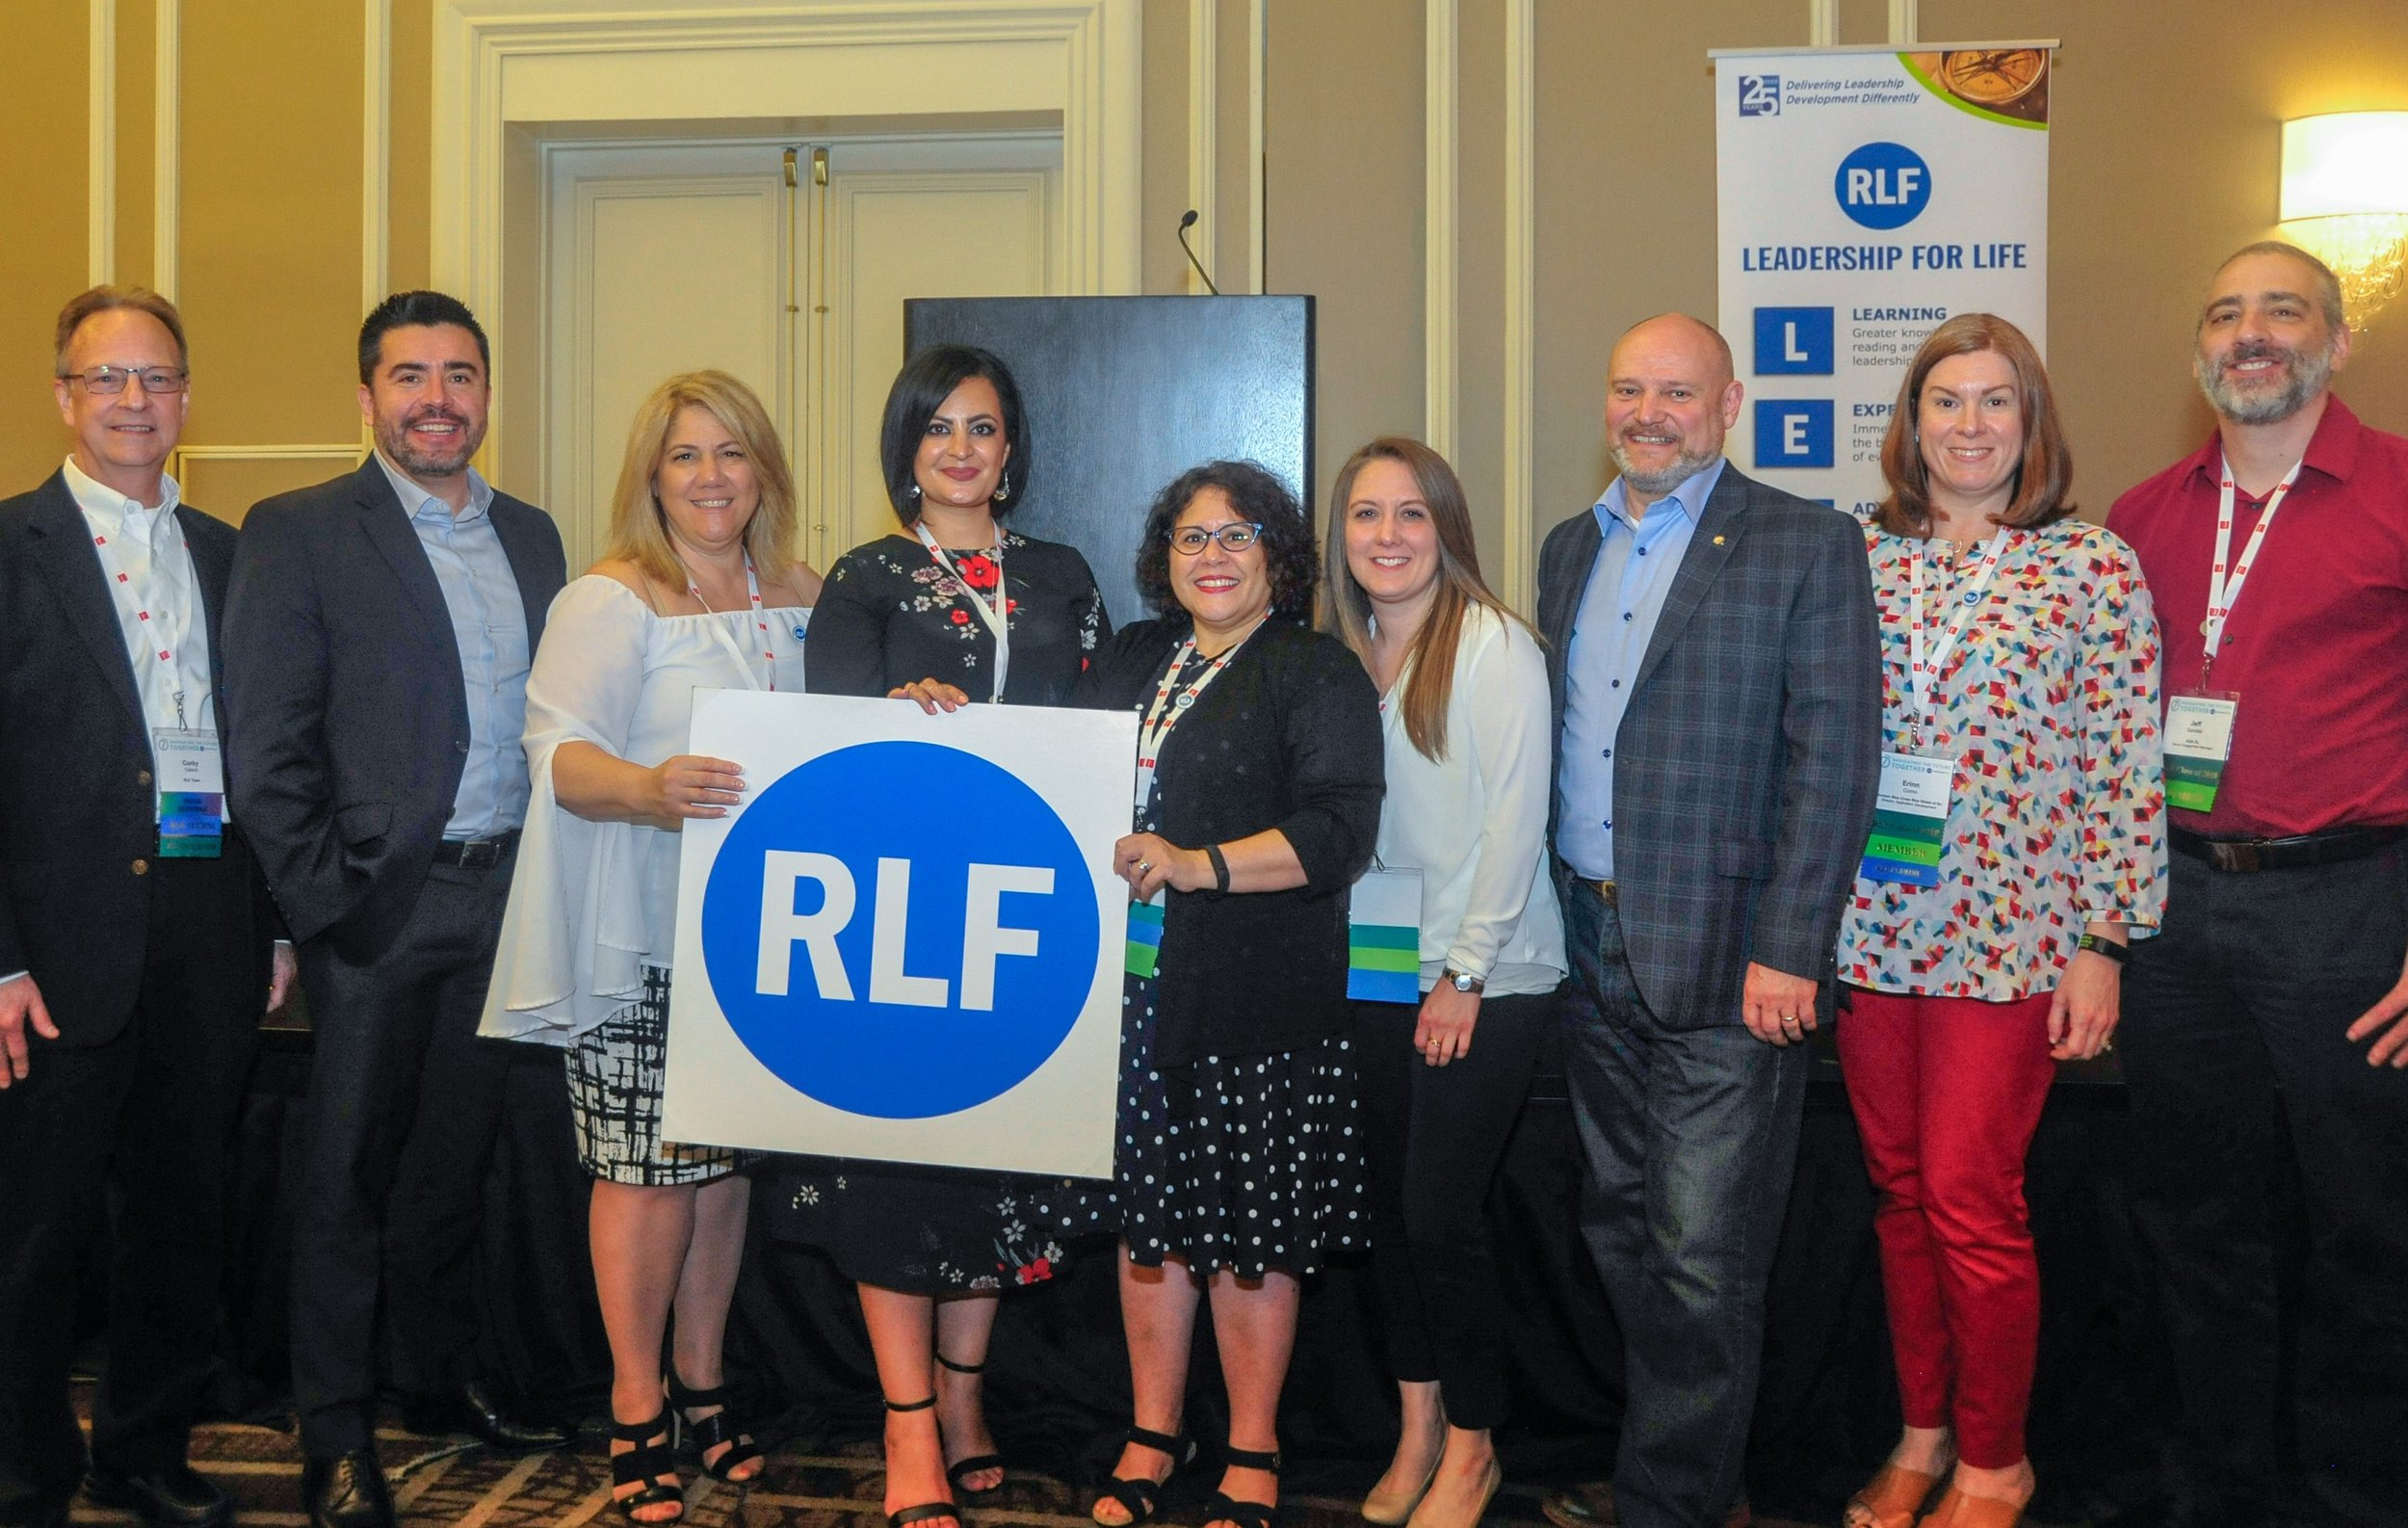 Every 2018 RLF program gathered for group photos after the RLF Graduation Celebration during SIM Connect Live in Orlando on May 15, 2019. Above, graduates and facilitators of the 2018 New York Metro program share their pride in their forum.